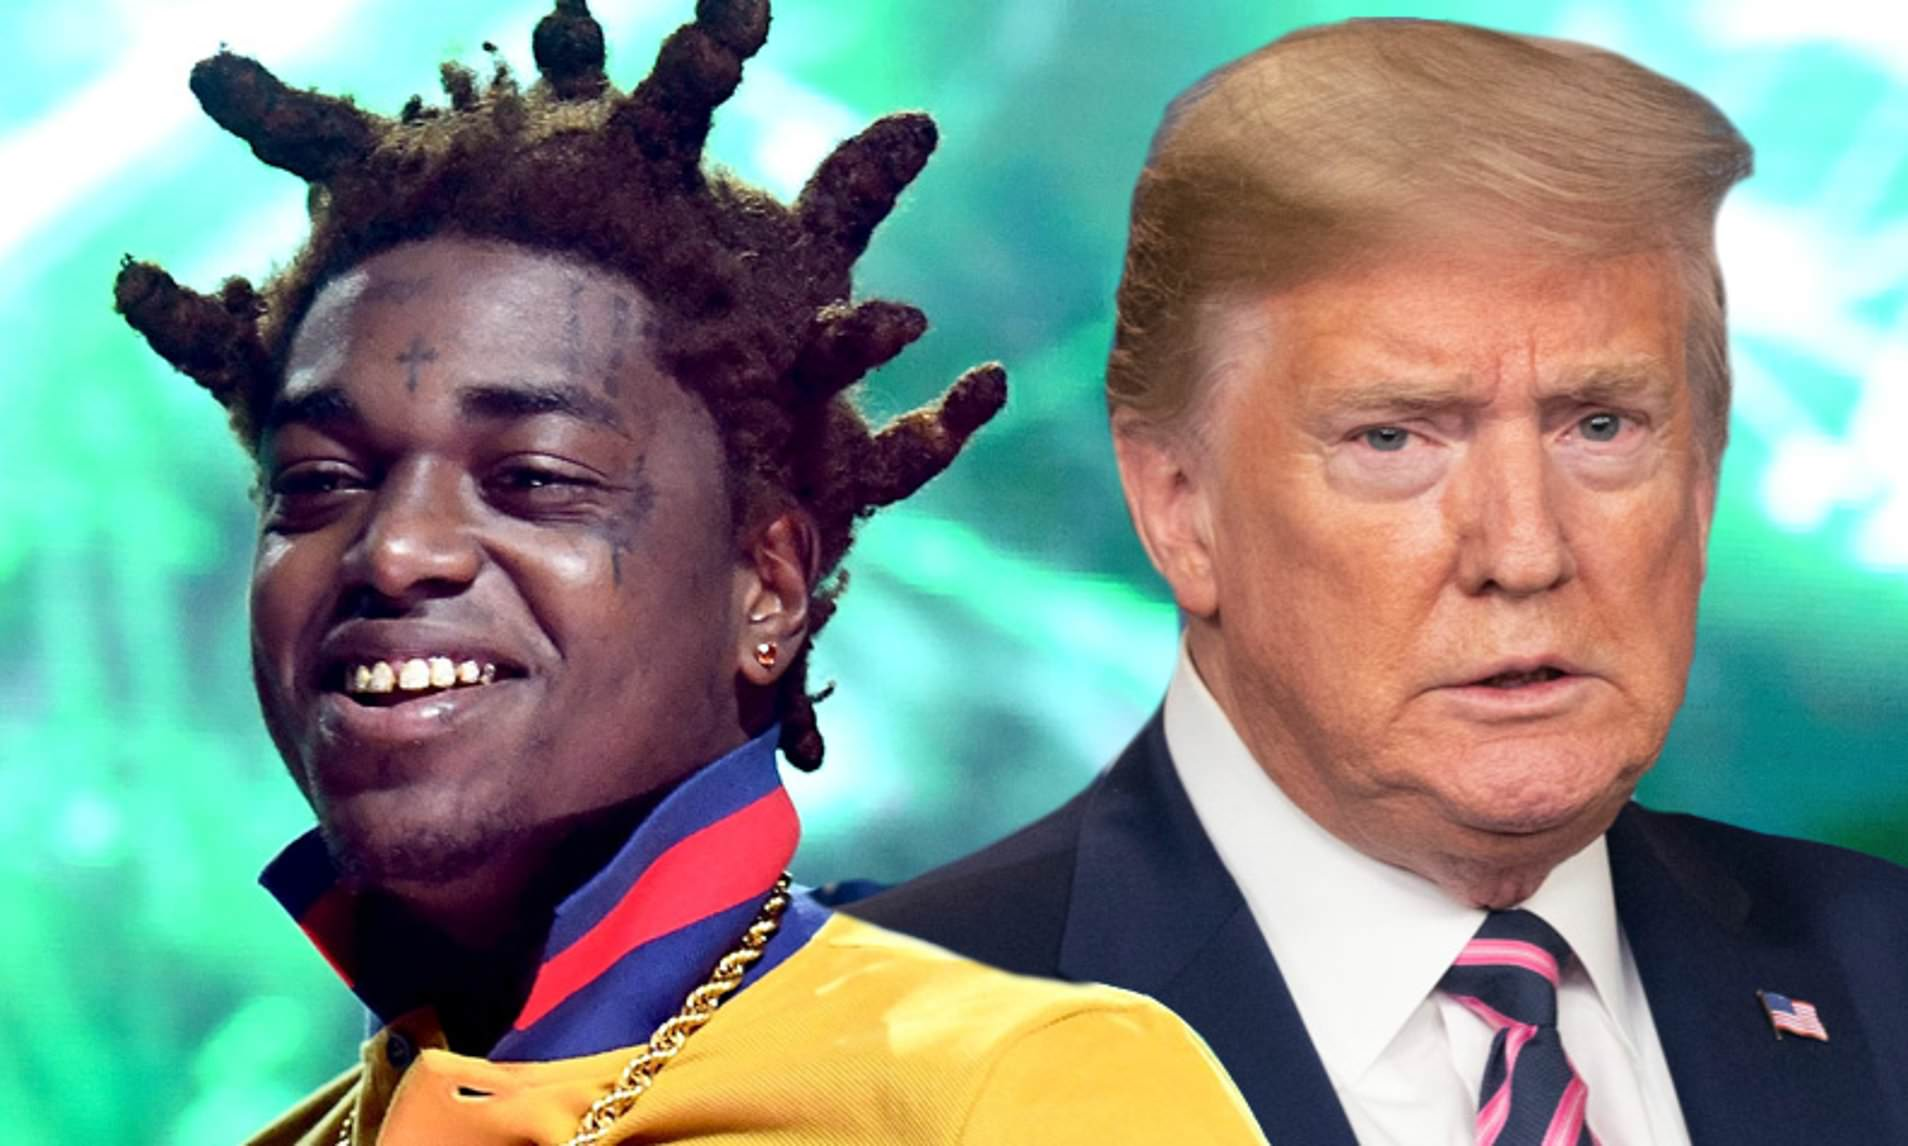 Rapper Kodak Black's tweet promising to spend $1 million on charity if released by Donald Trump has 'vanished' after the former president granted him clemency on his last day in office.